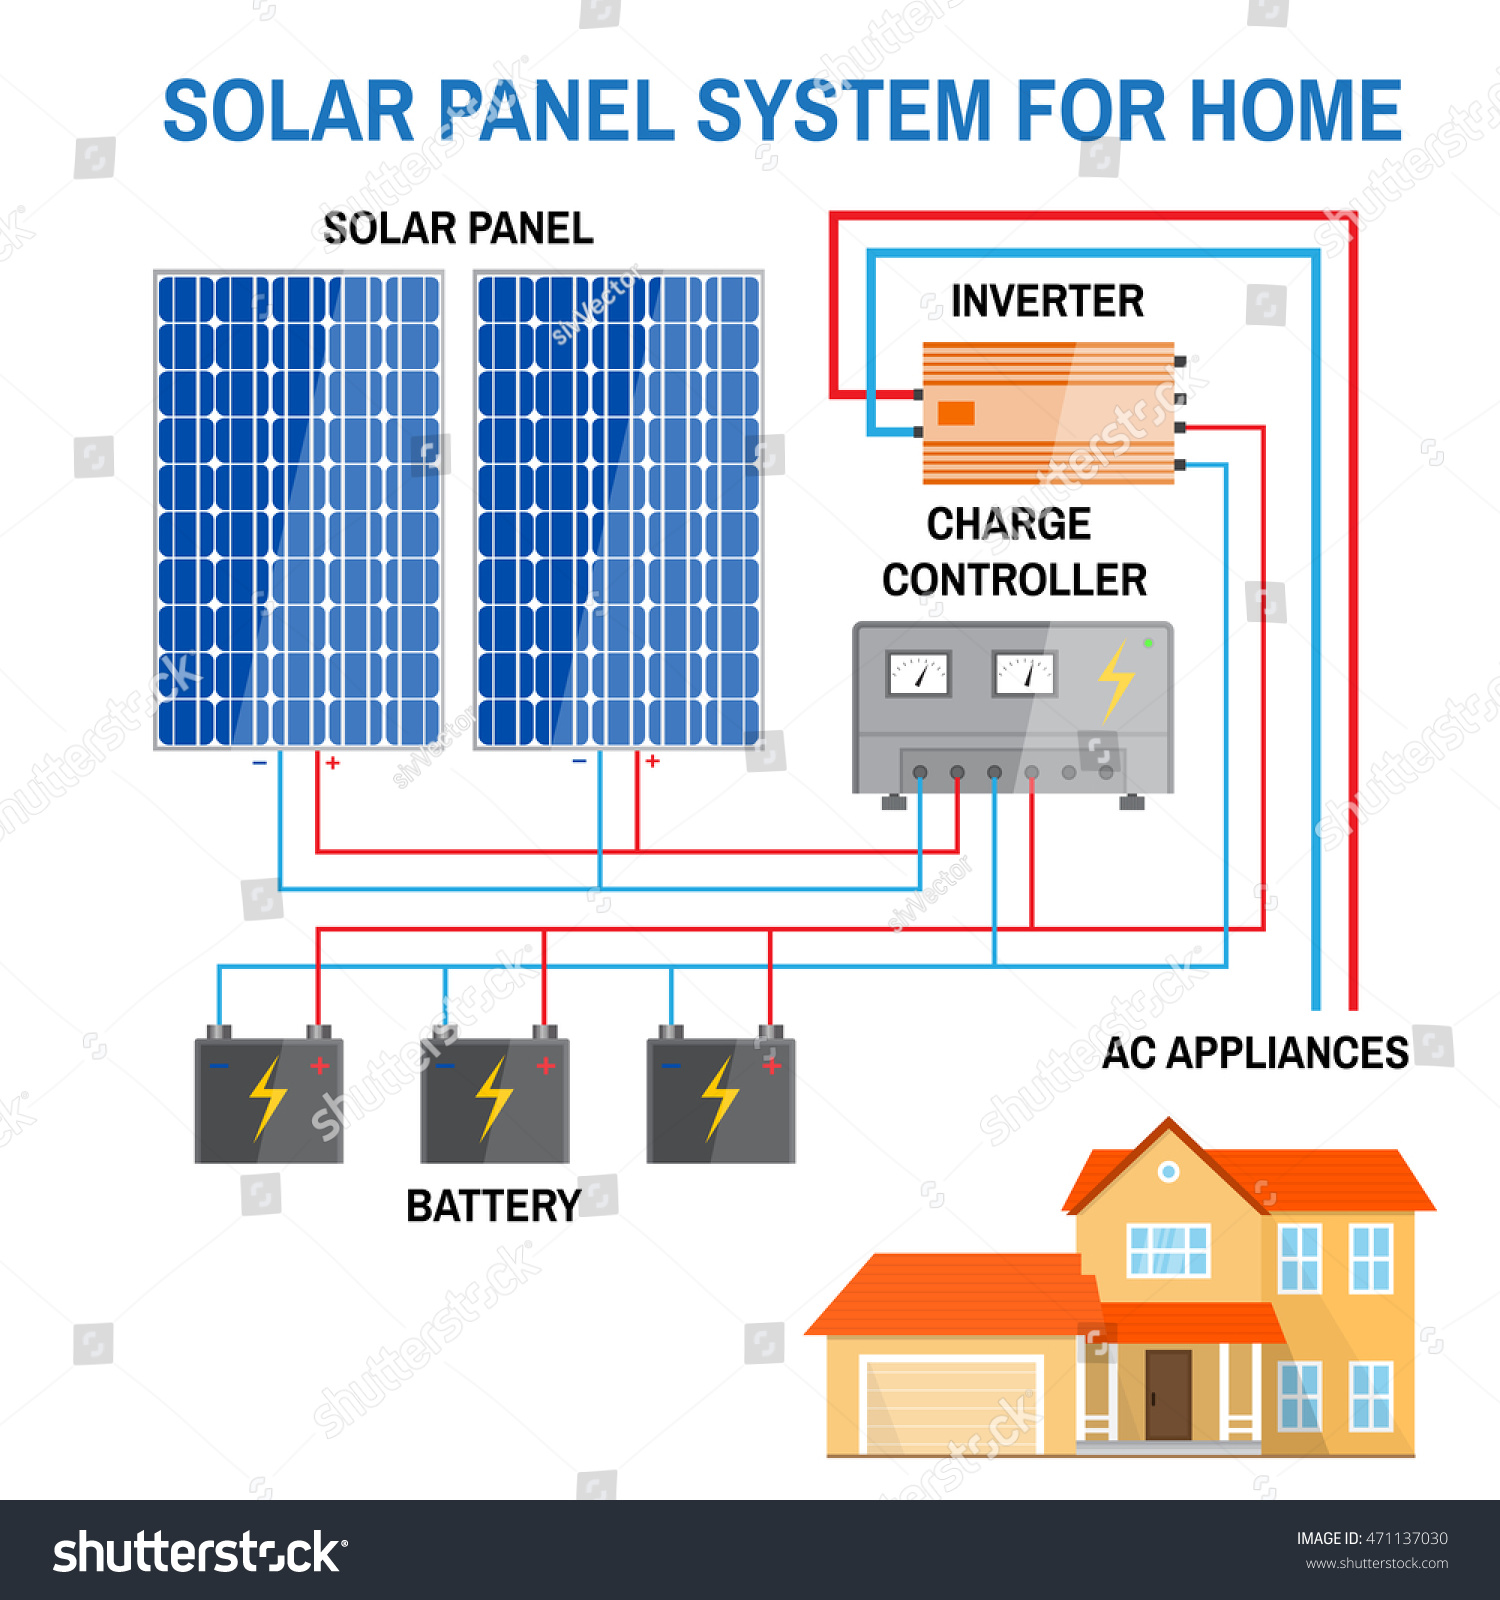 solar power wiring diagram download wiring diagram Solar Panel Setup Diagram solar power system wiring diagram electrical engineering blog wiring diagram for solar system the wiring diagram solar panel setup diagram